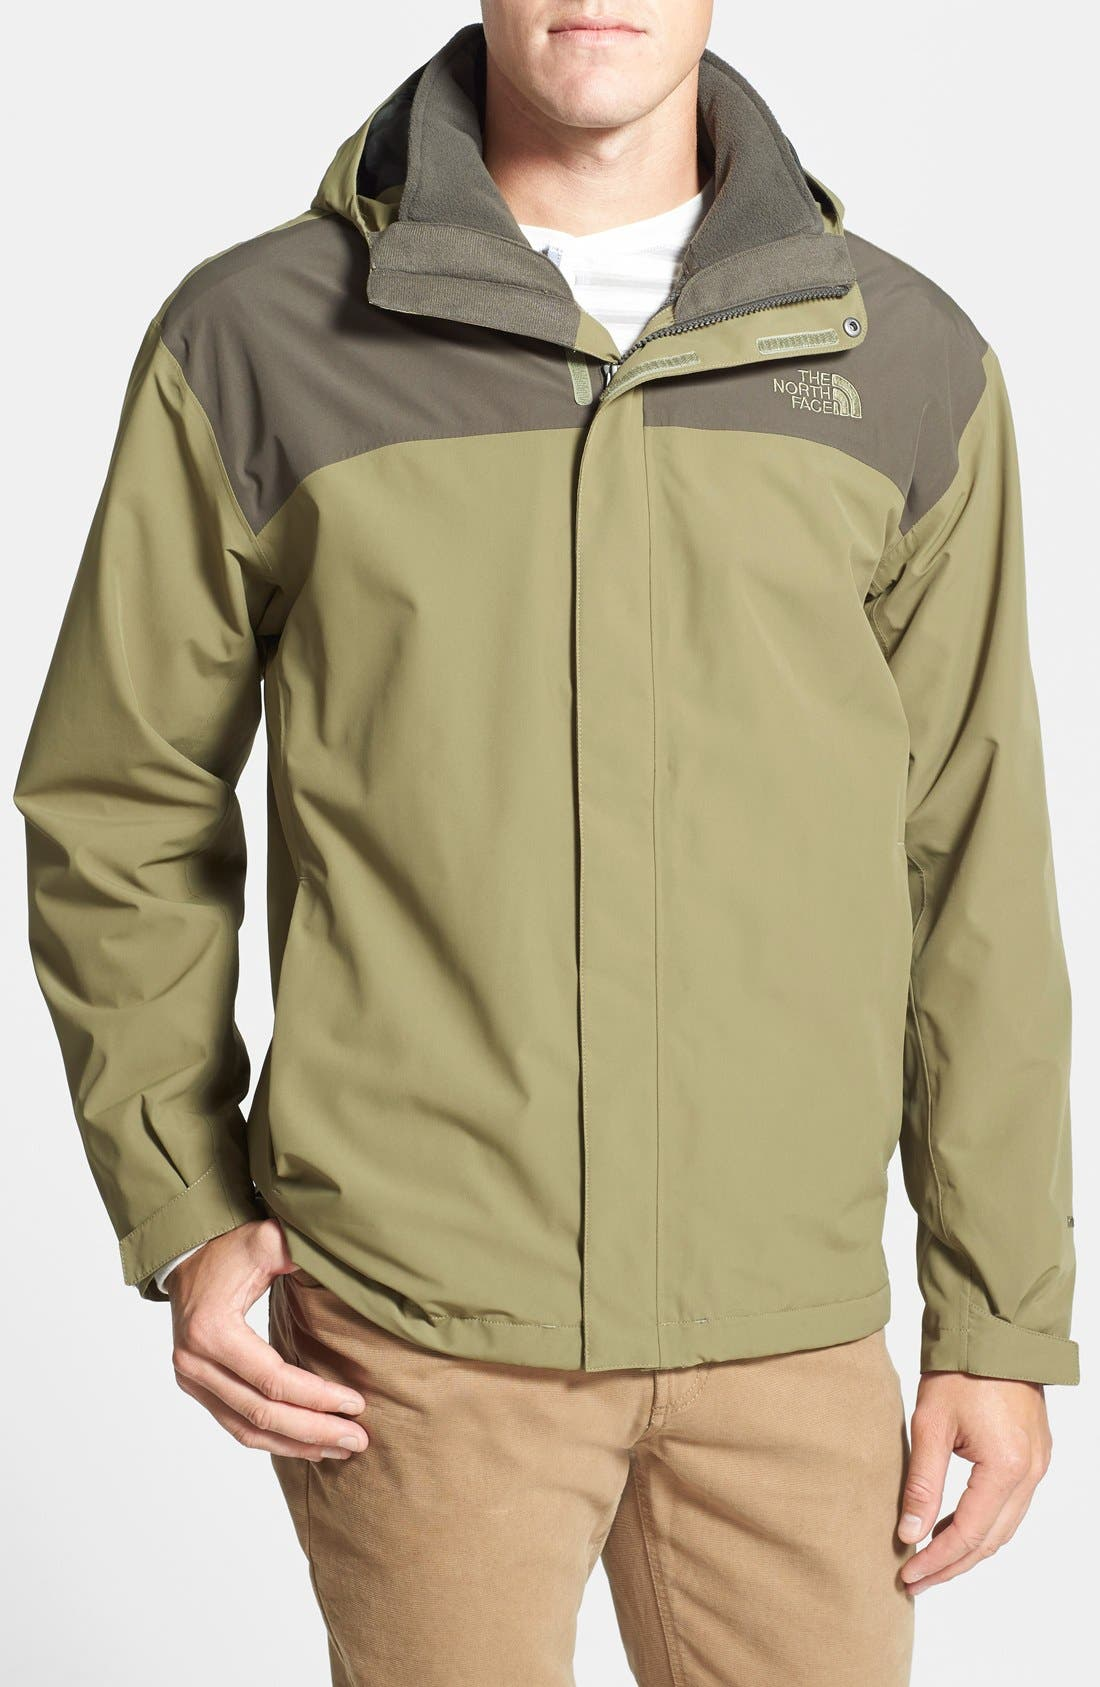 Alternate Image 1 Selected - The North Face 'Anden' TriClimate® Hooded 3-in-1 Jacket